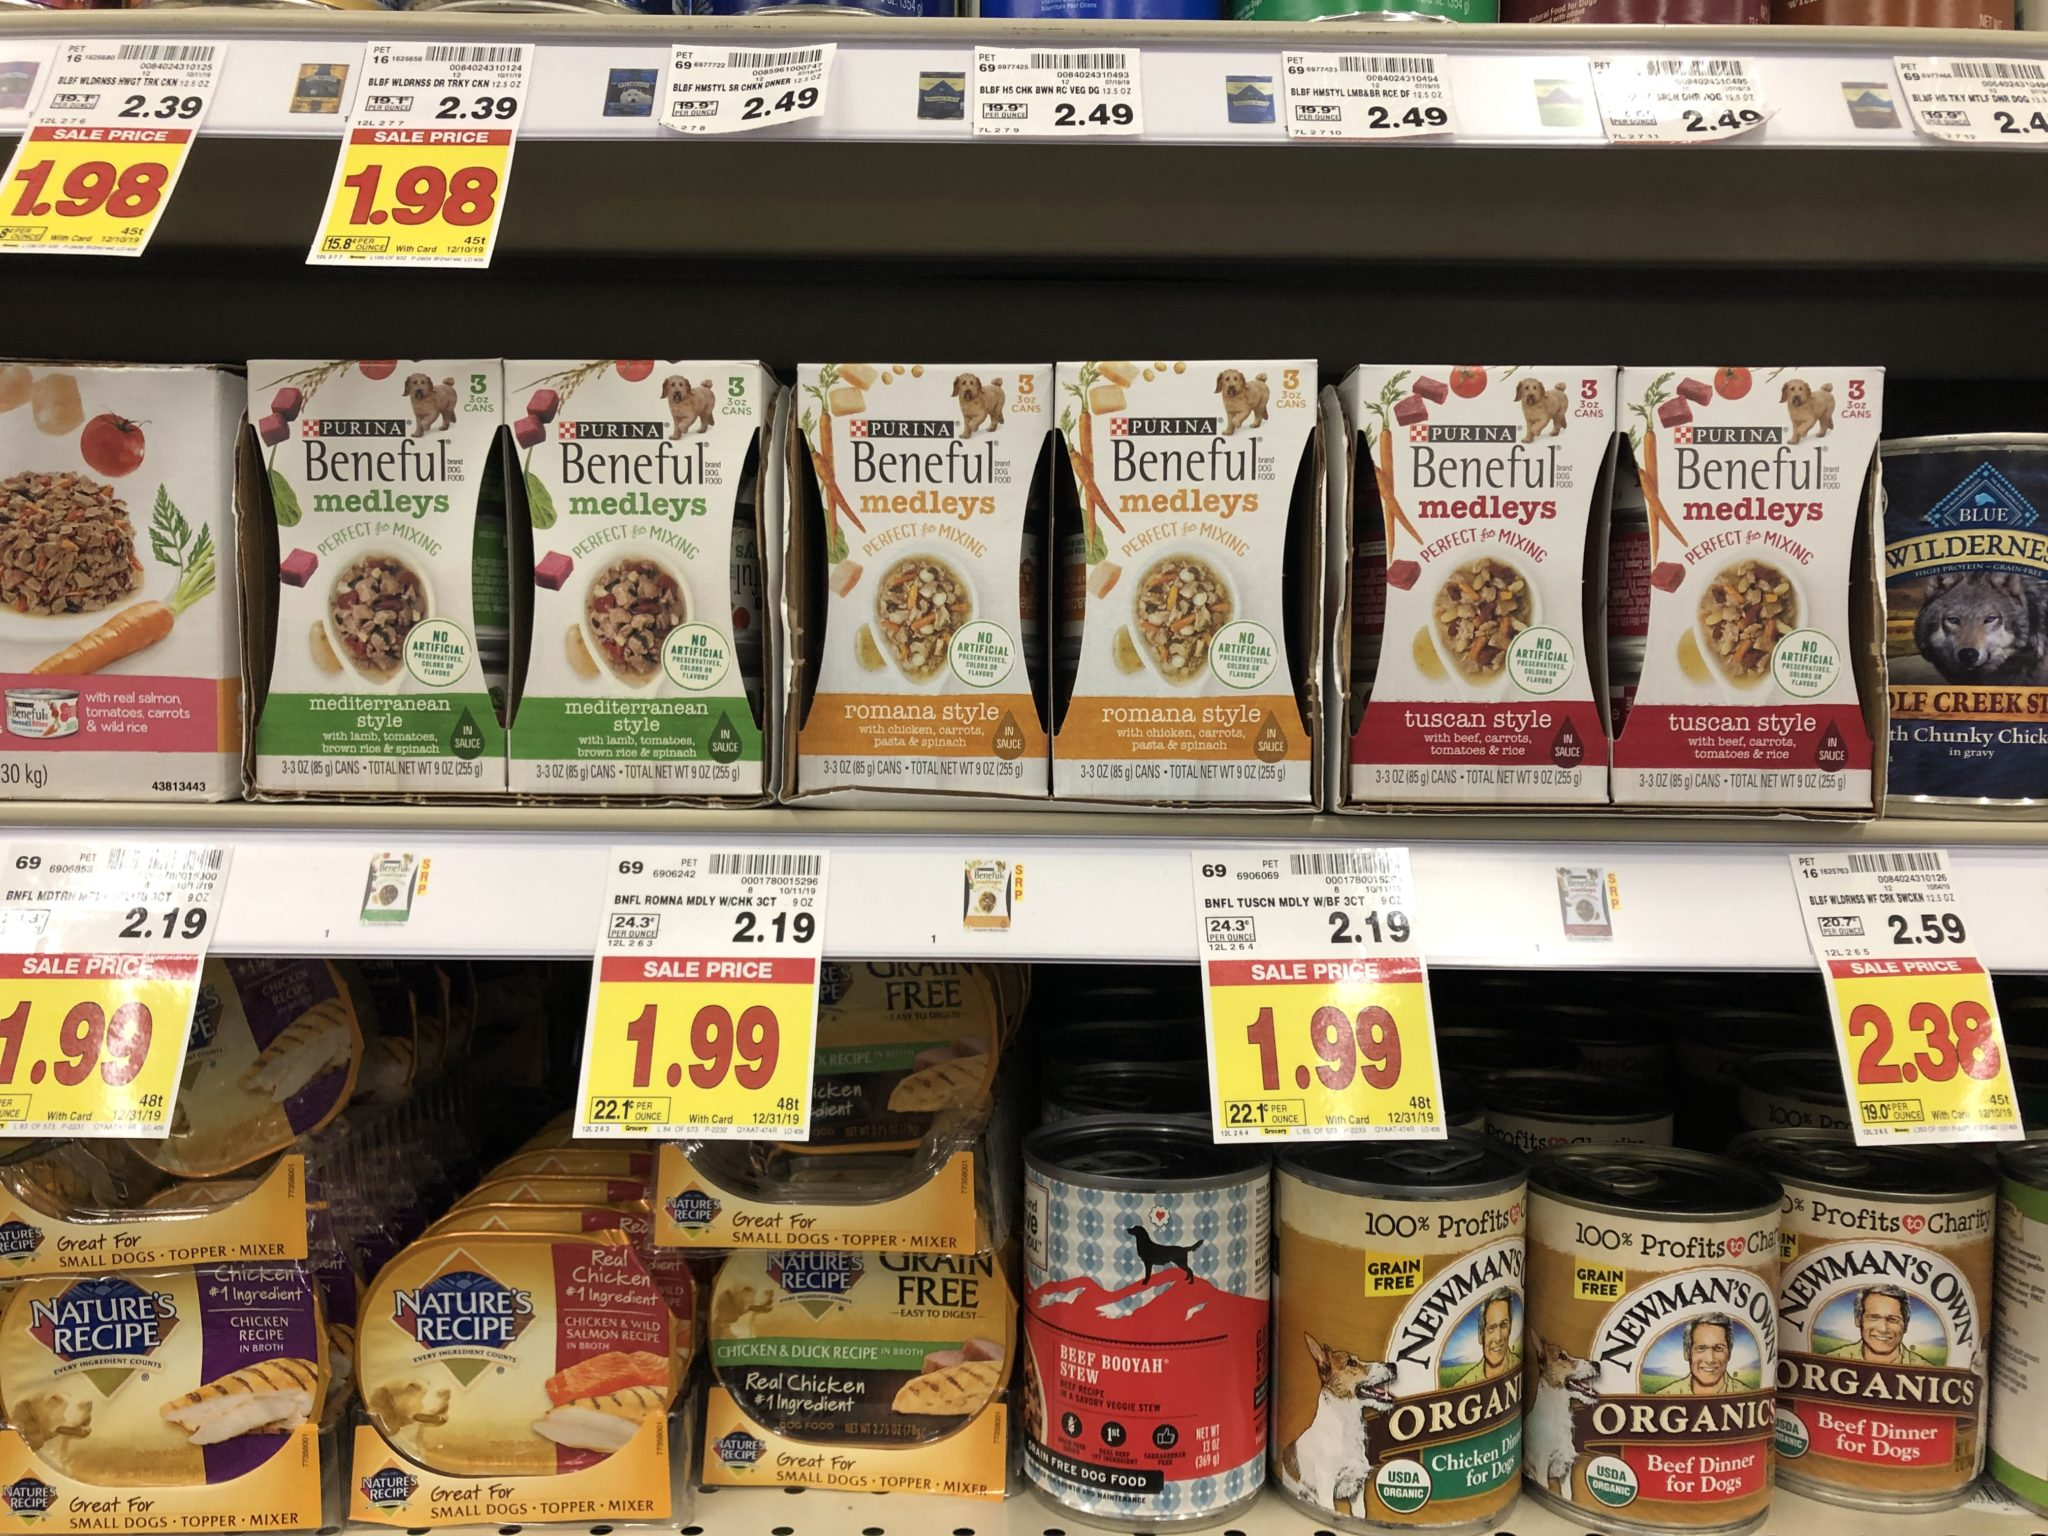 Purina Dog Food As Low As 90¢ At Kroger